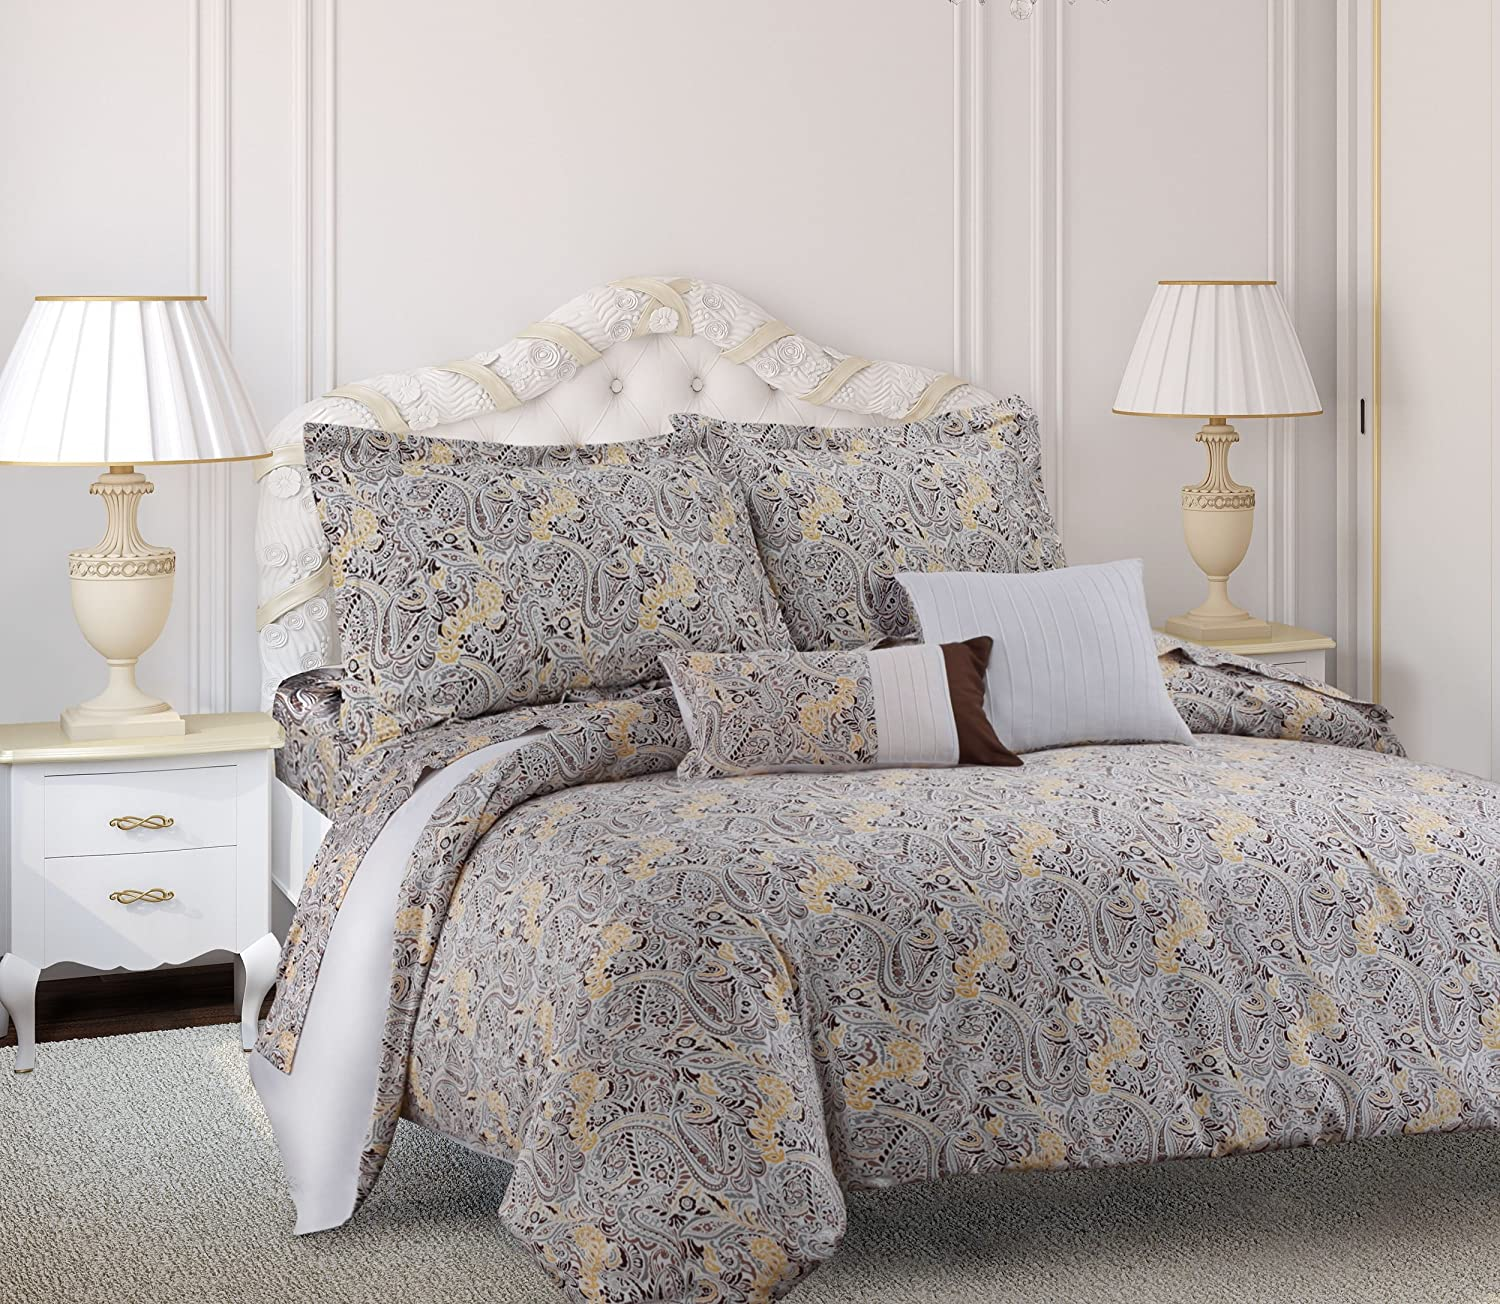 Tribeca Living Fiji 5 Piece Egyptian Cotton Paisley Printed Duvet Cover Set, Queen